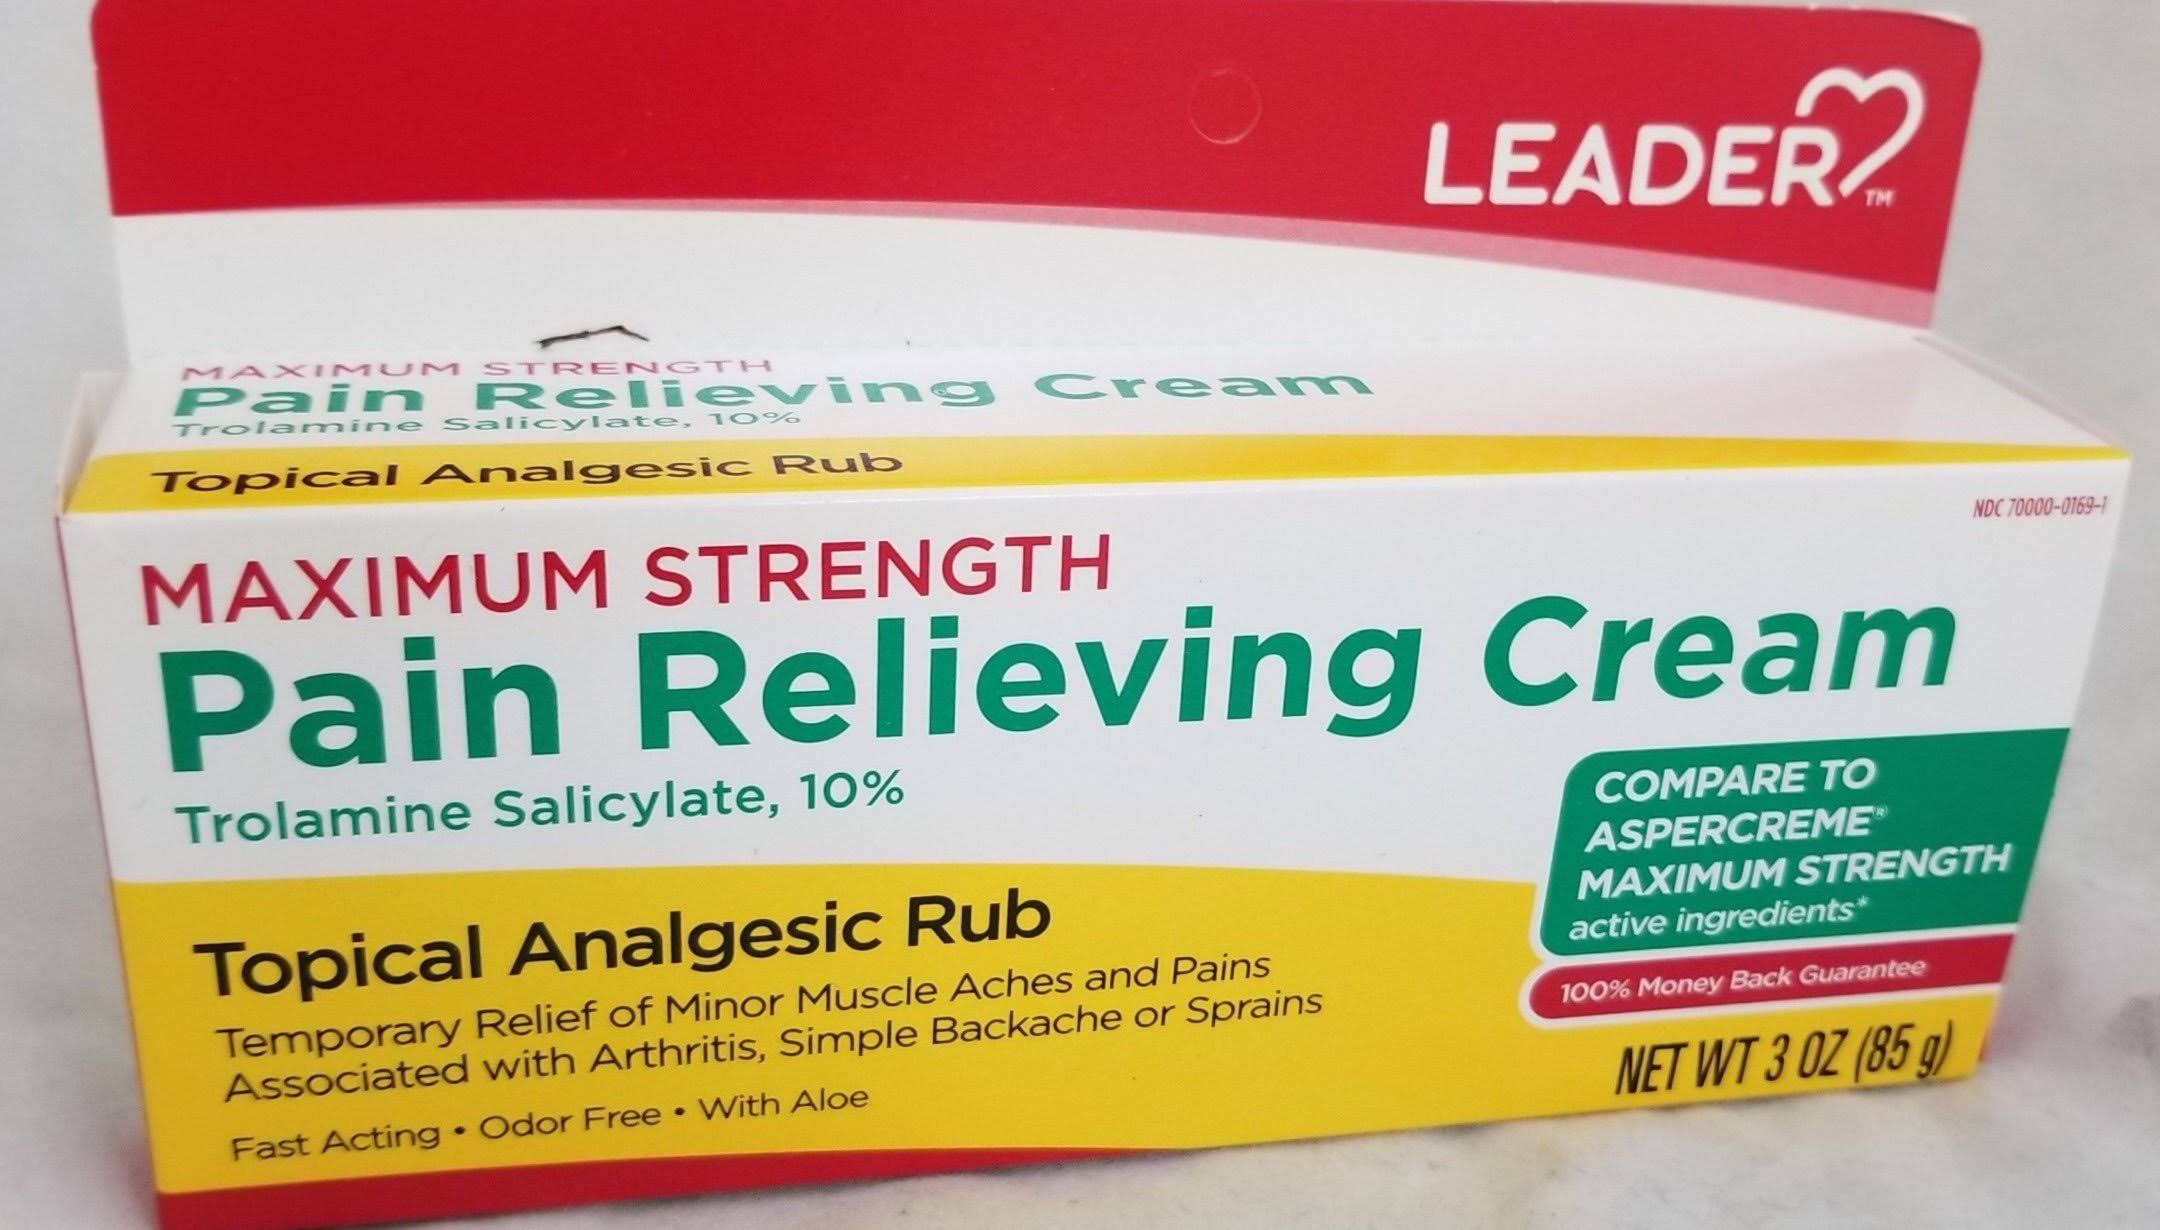 Leader Maximum Strength Pain Relieving Cream